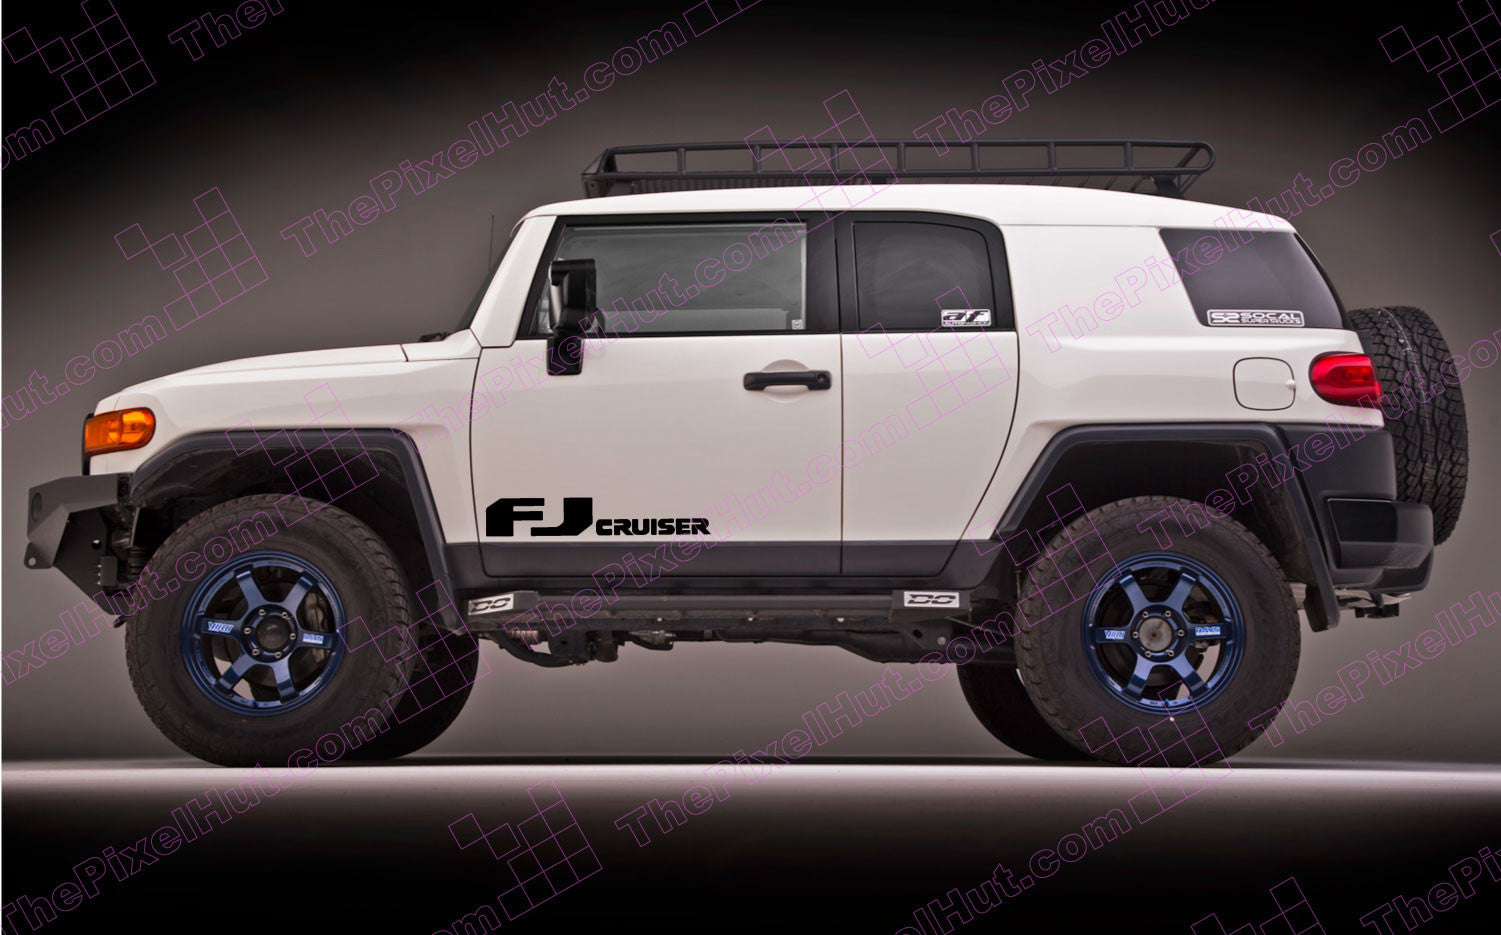 Toyota Fj Cruiser Door Decal Kit The Pixel Hut